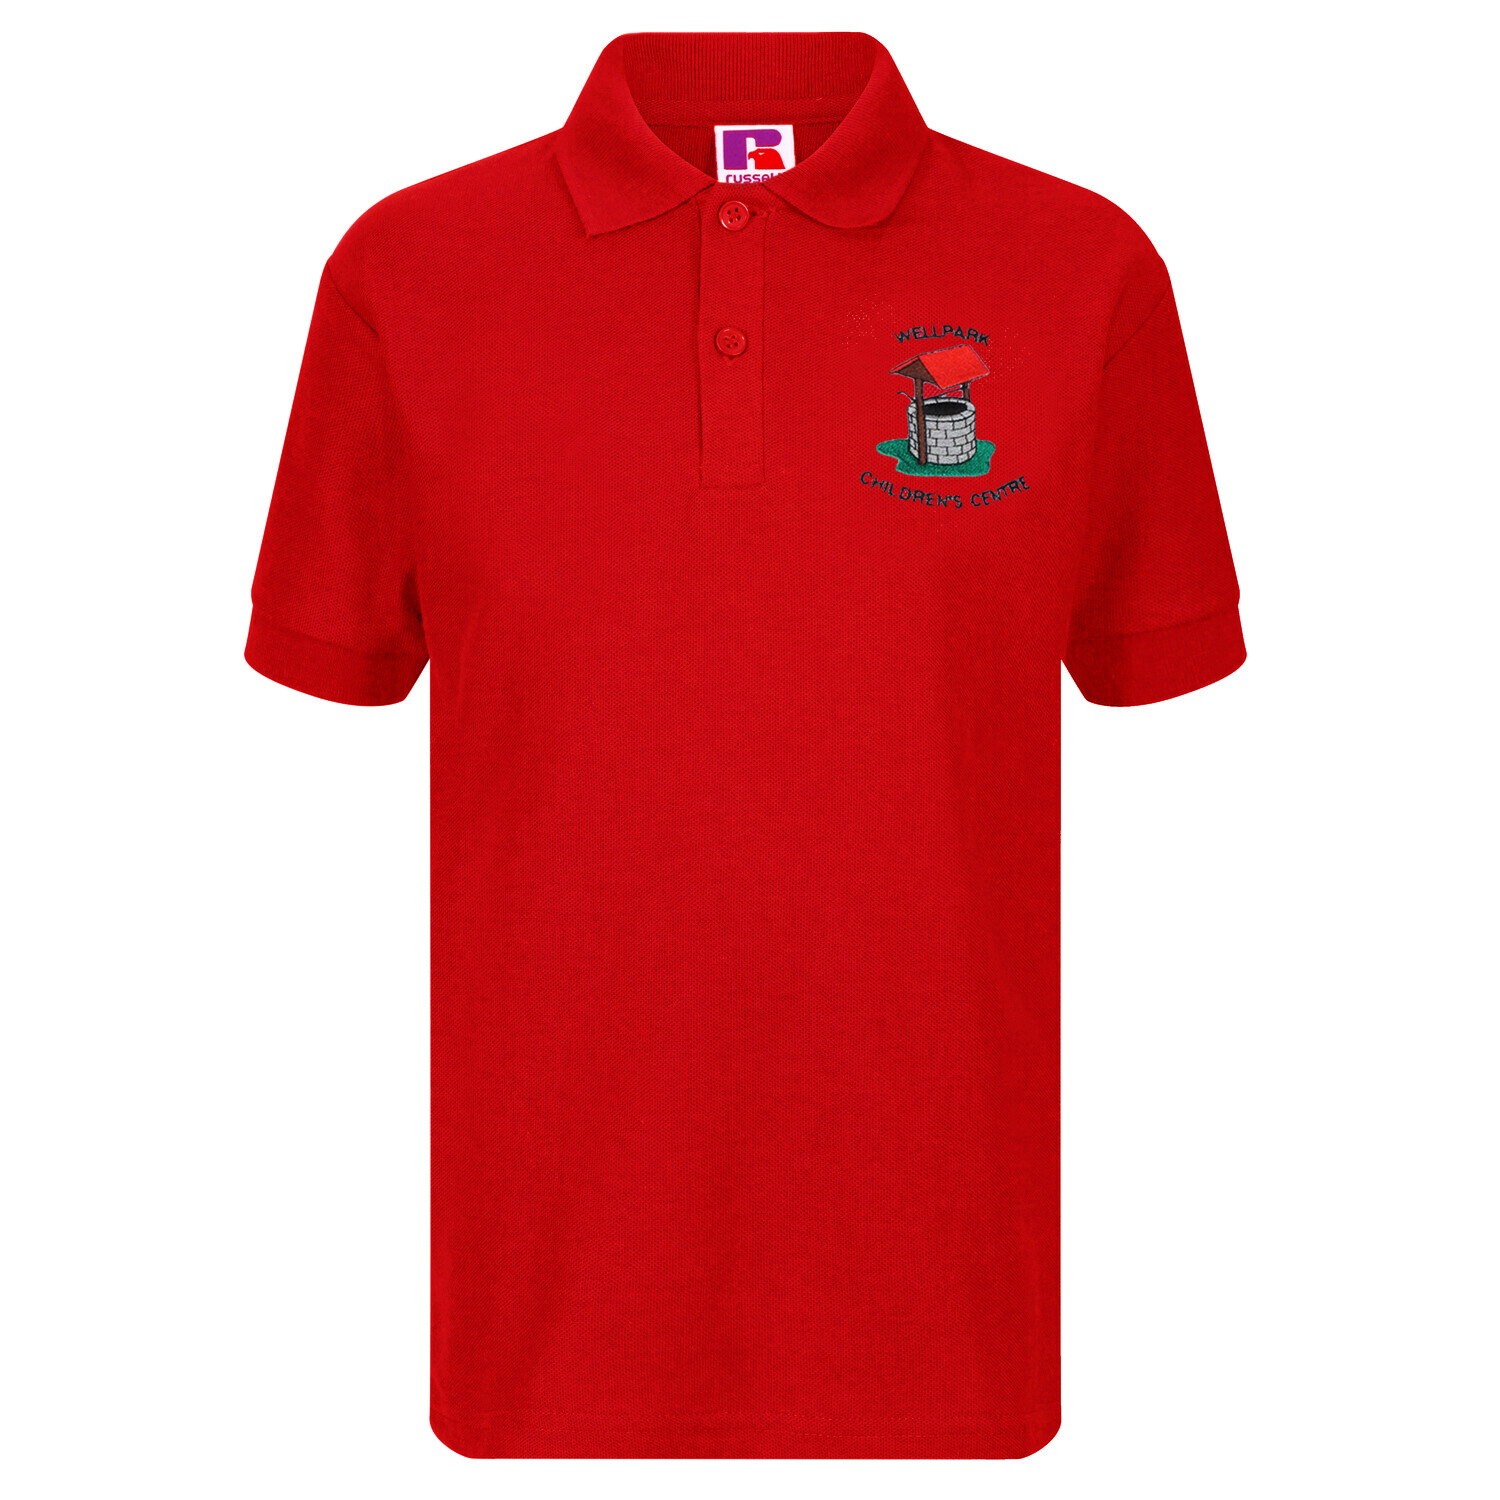 Wellpark Childrens Centre Staff Polo (Unisex) (RCS539M)